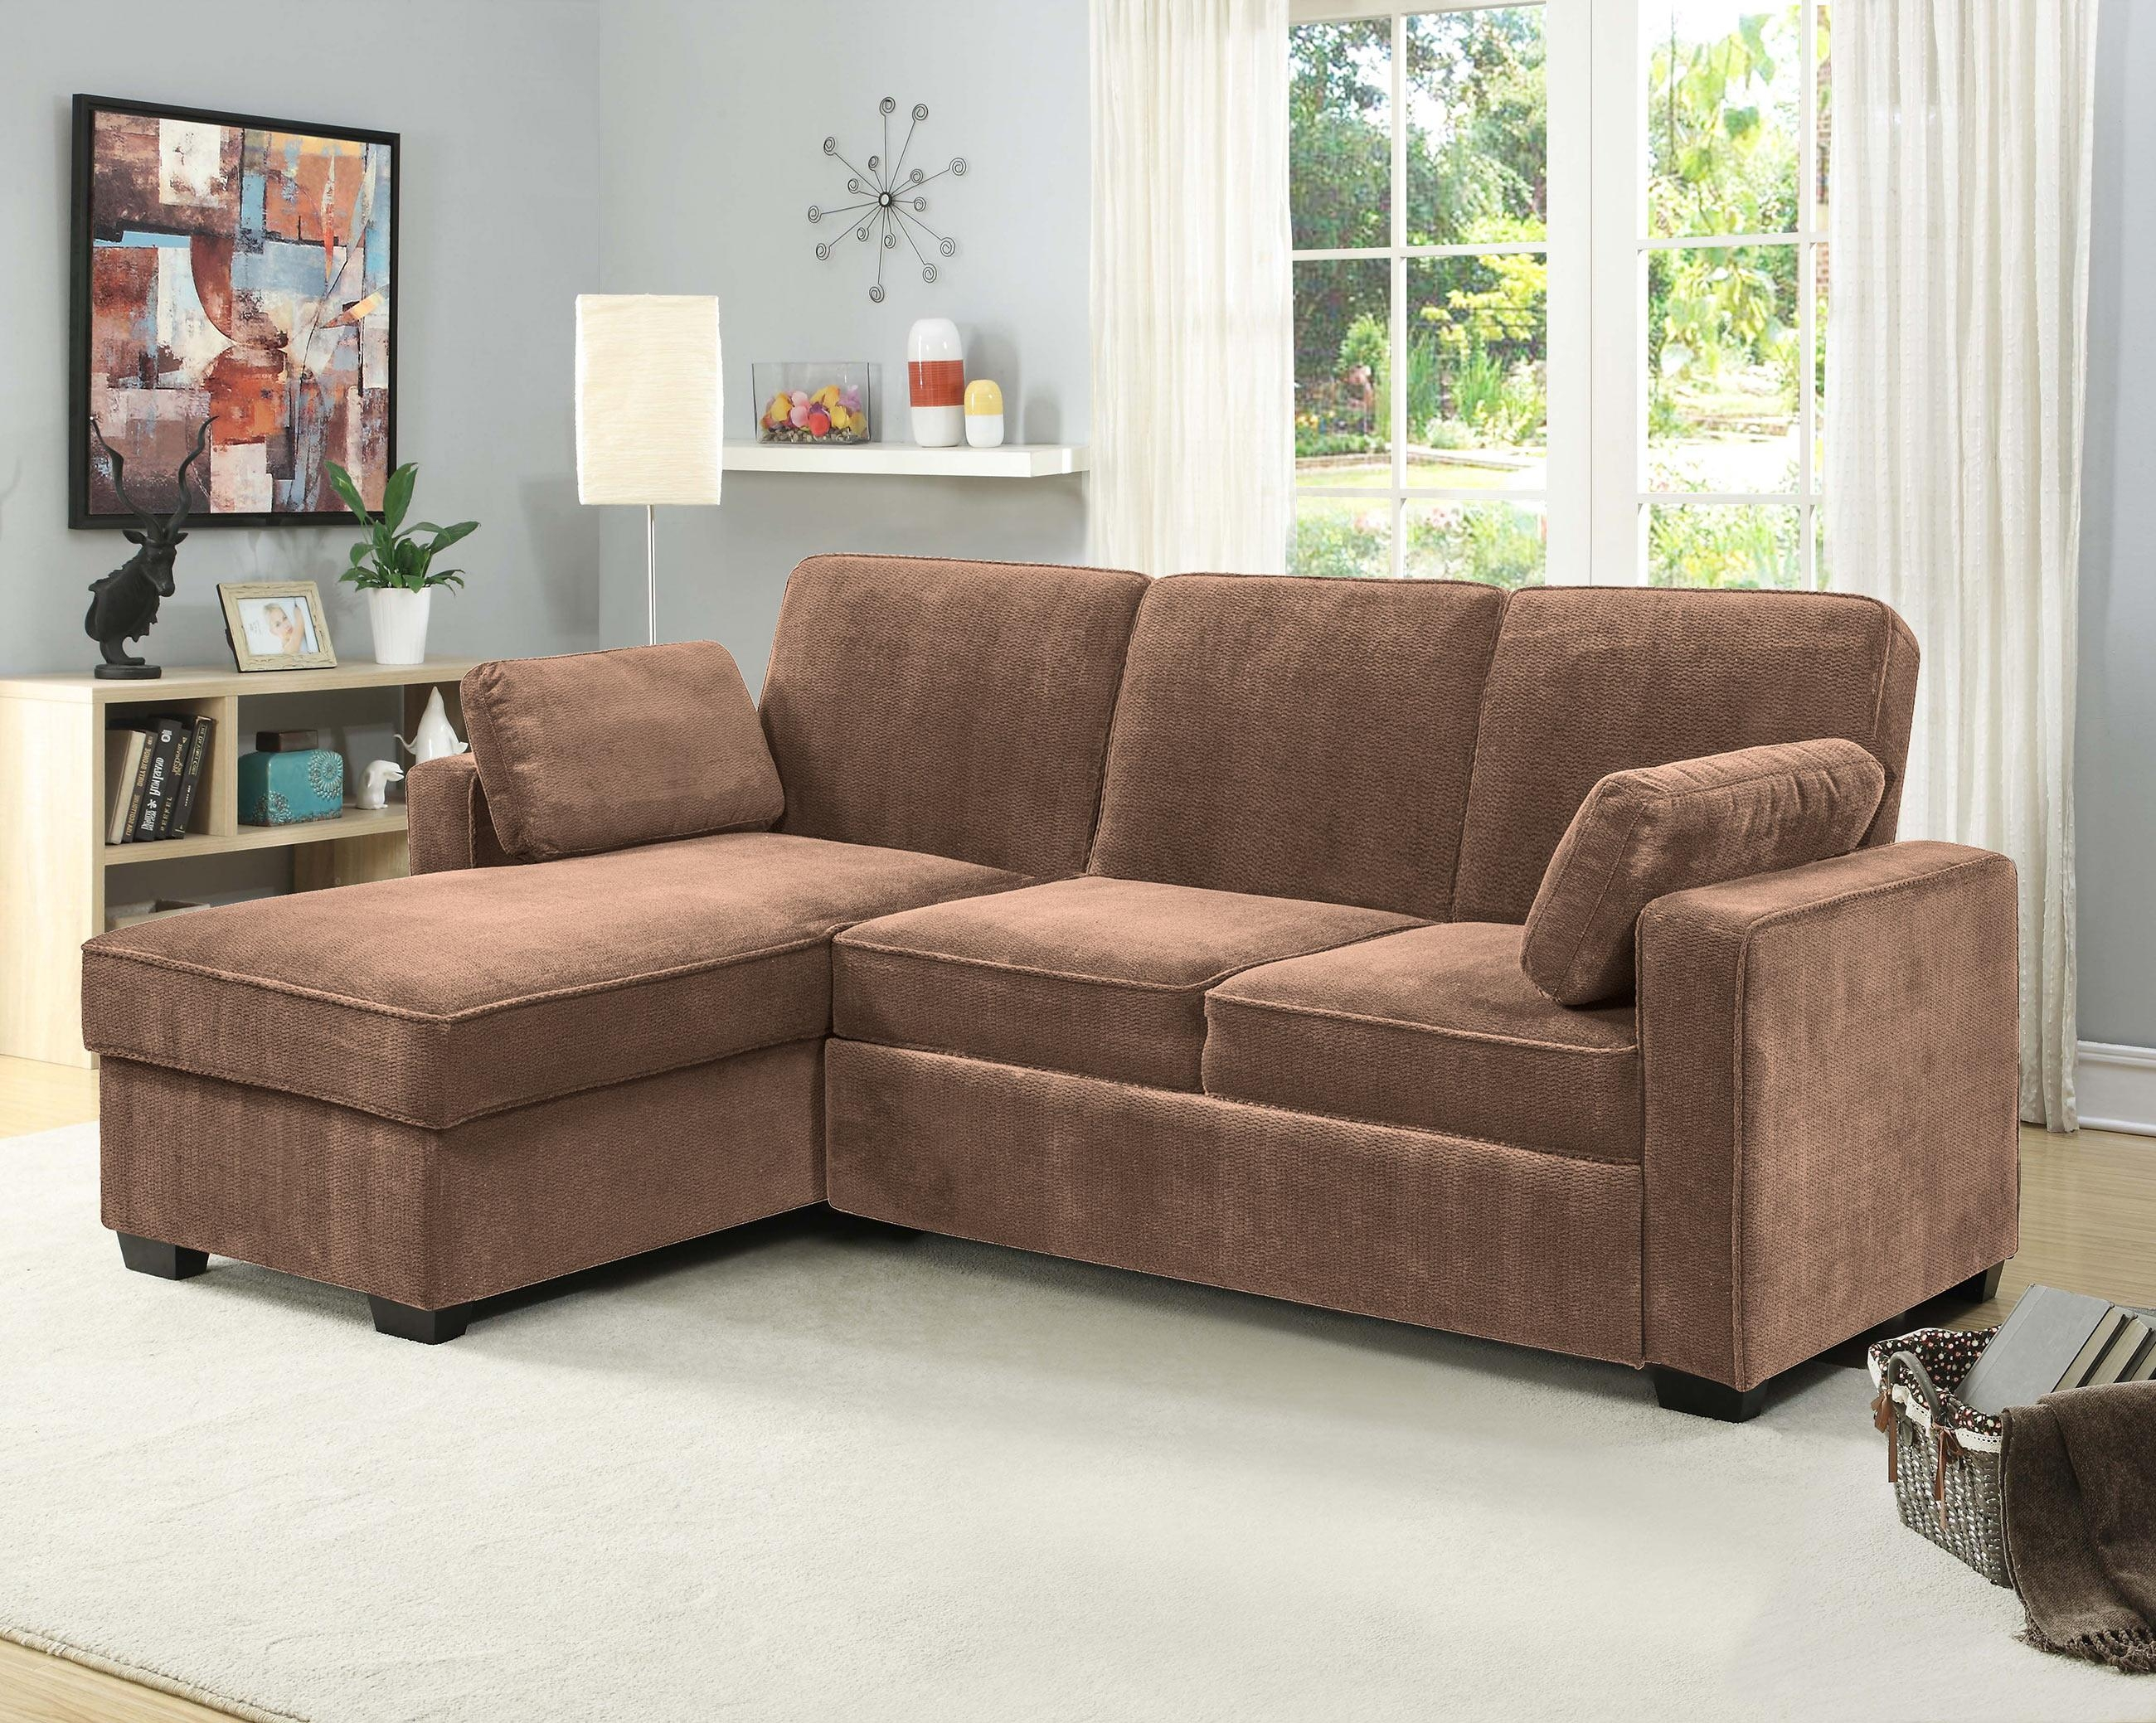 Chaela Sectional Convertible Sofa Light Brownserta / Lifestyle With Serta Sectional (Image 10 of 20)